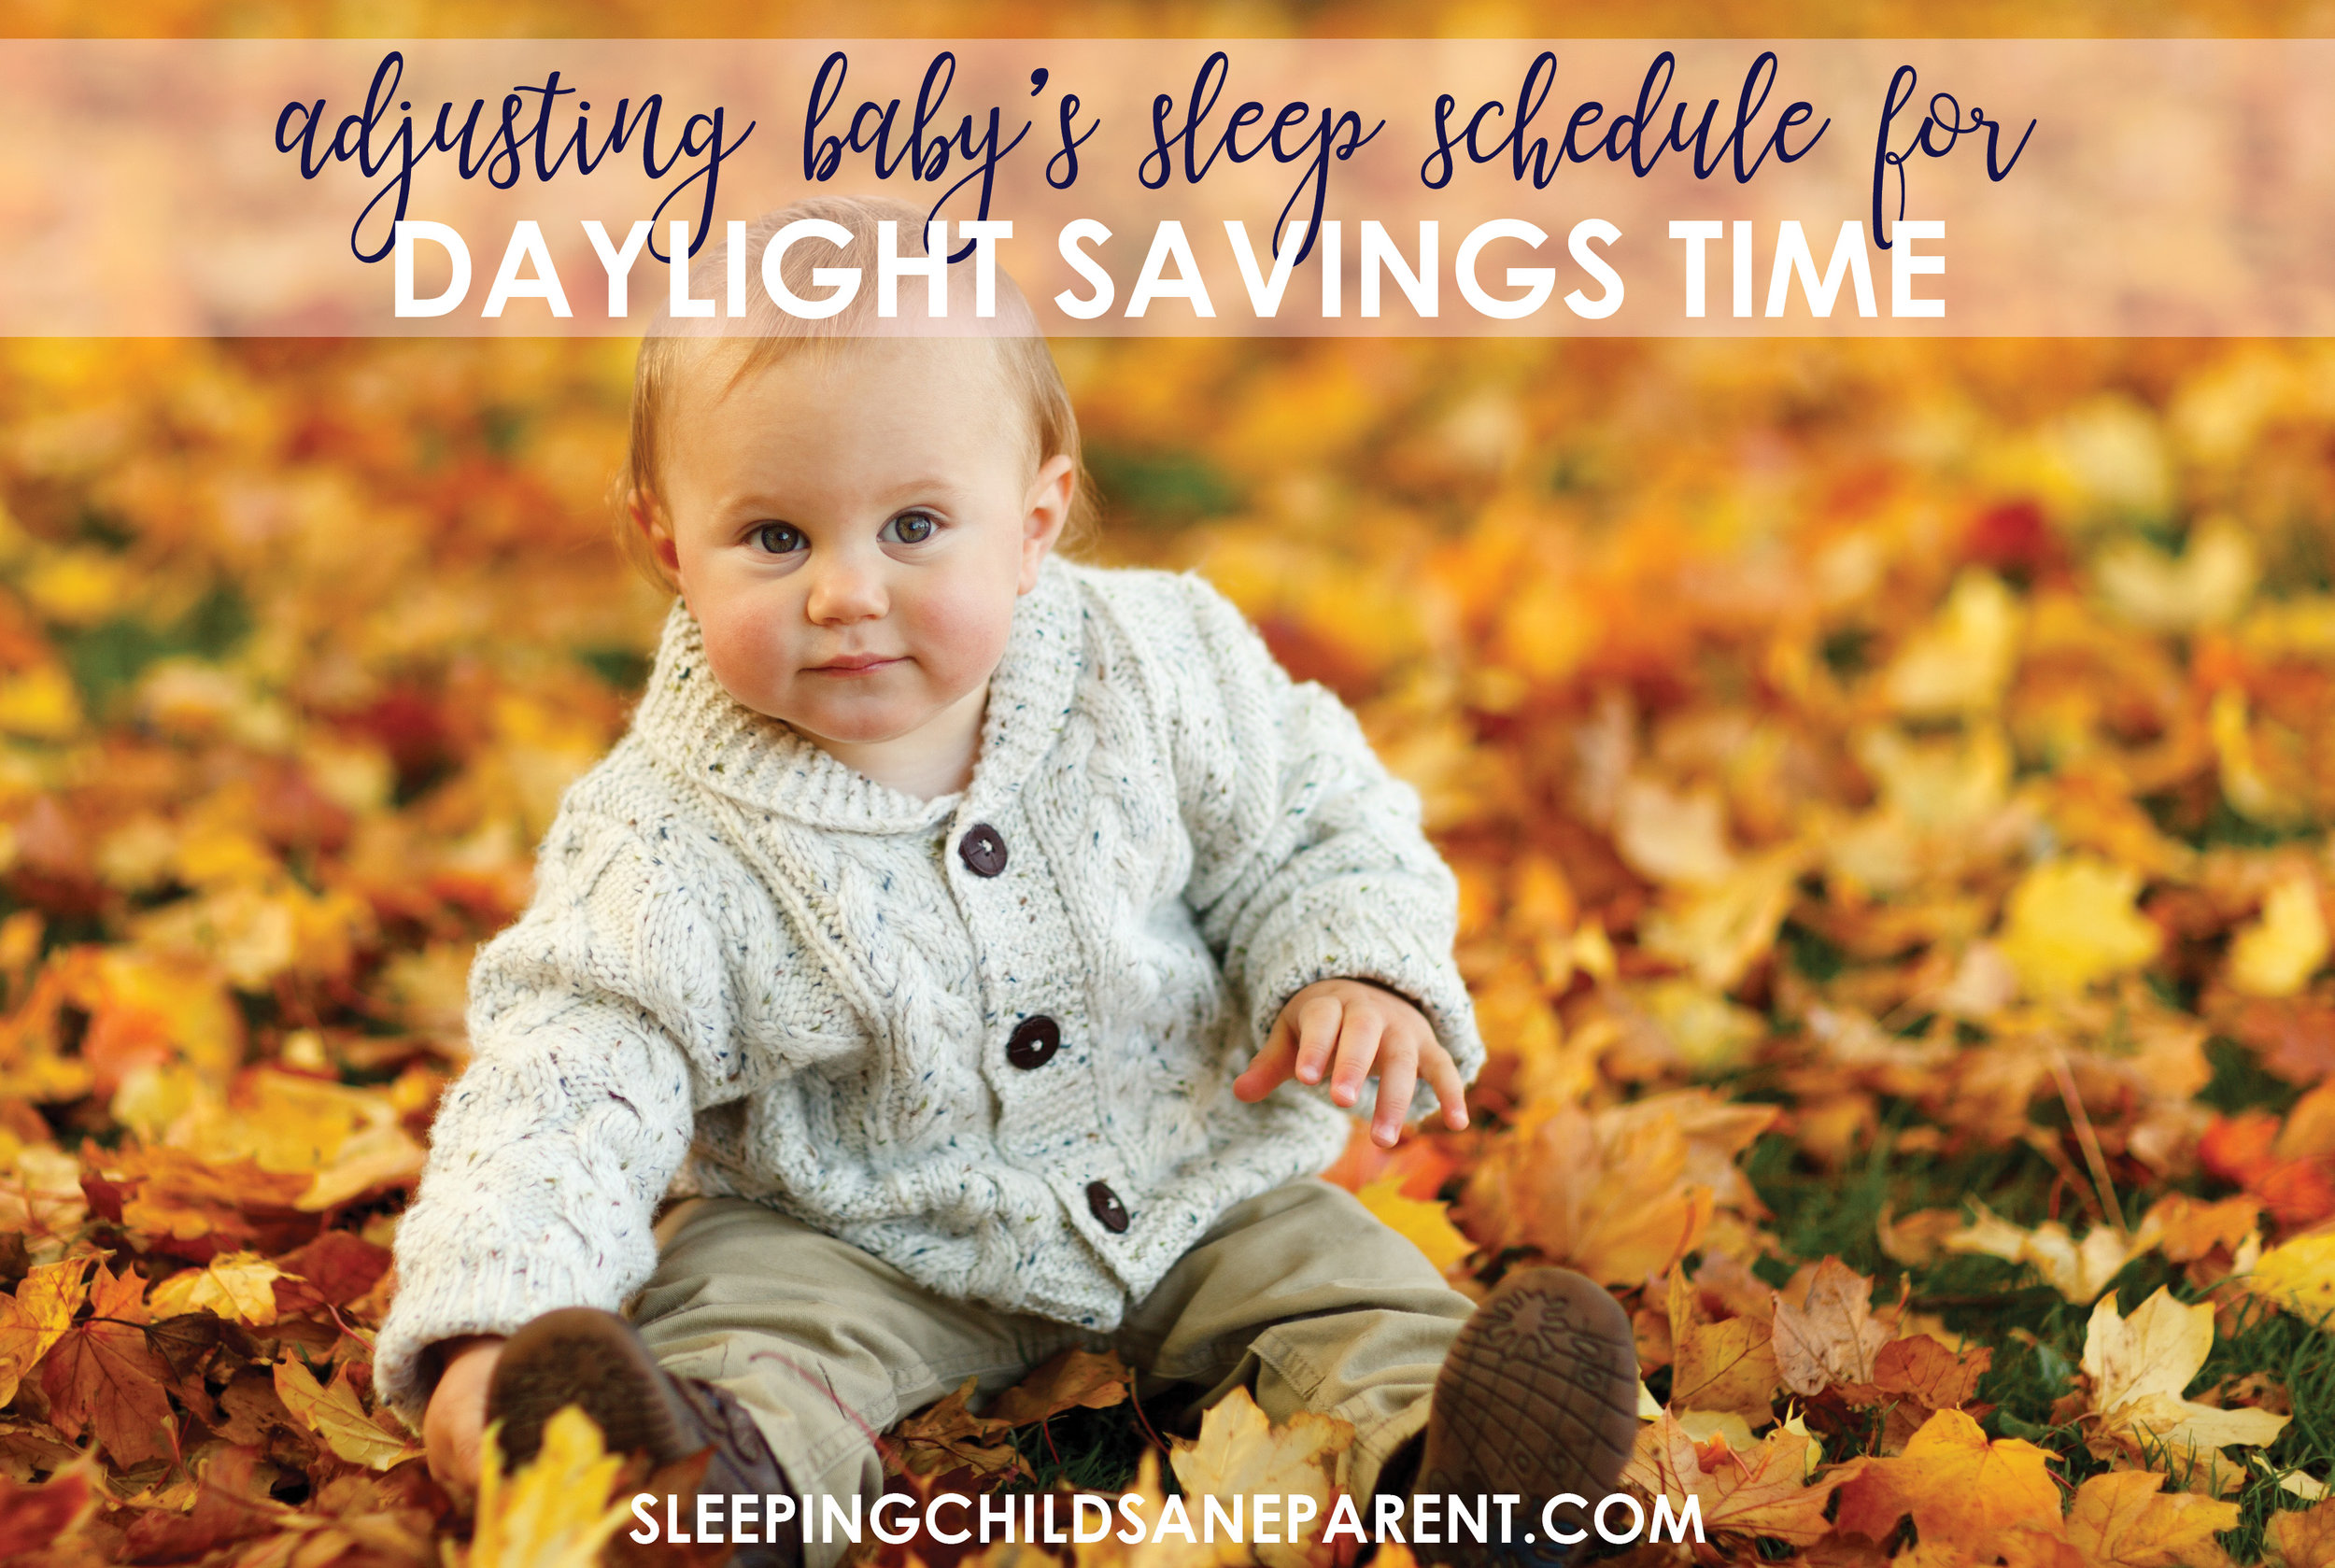 When the hours on the clock fall back, that doesn't mean you have to fall over as your little one's sleep falls apart. Check out these tips so that Baby can adjust to Daylight Savings without skipping a beat!